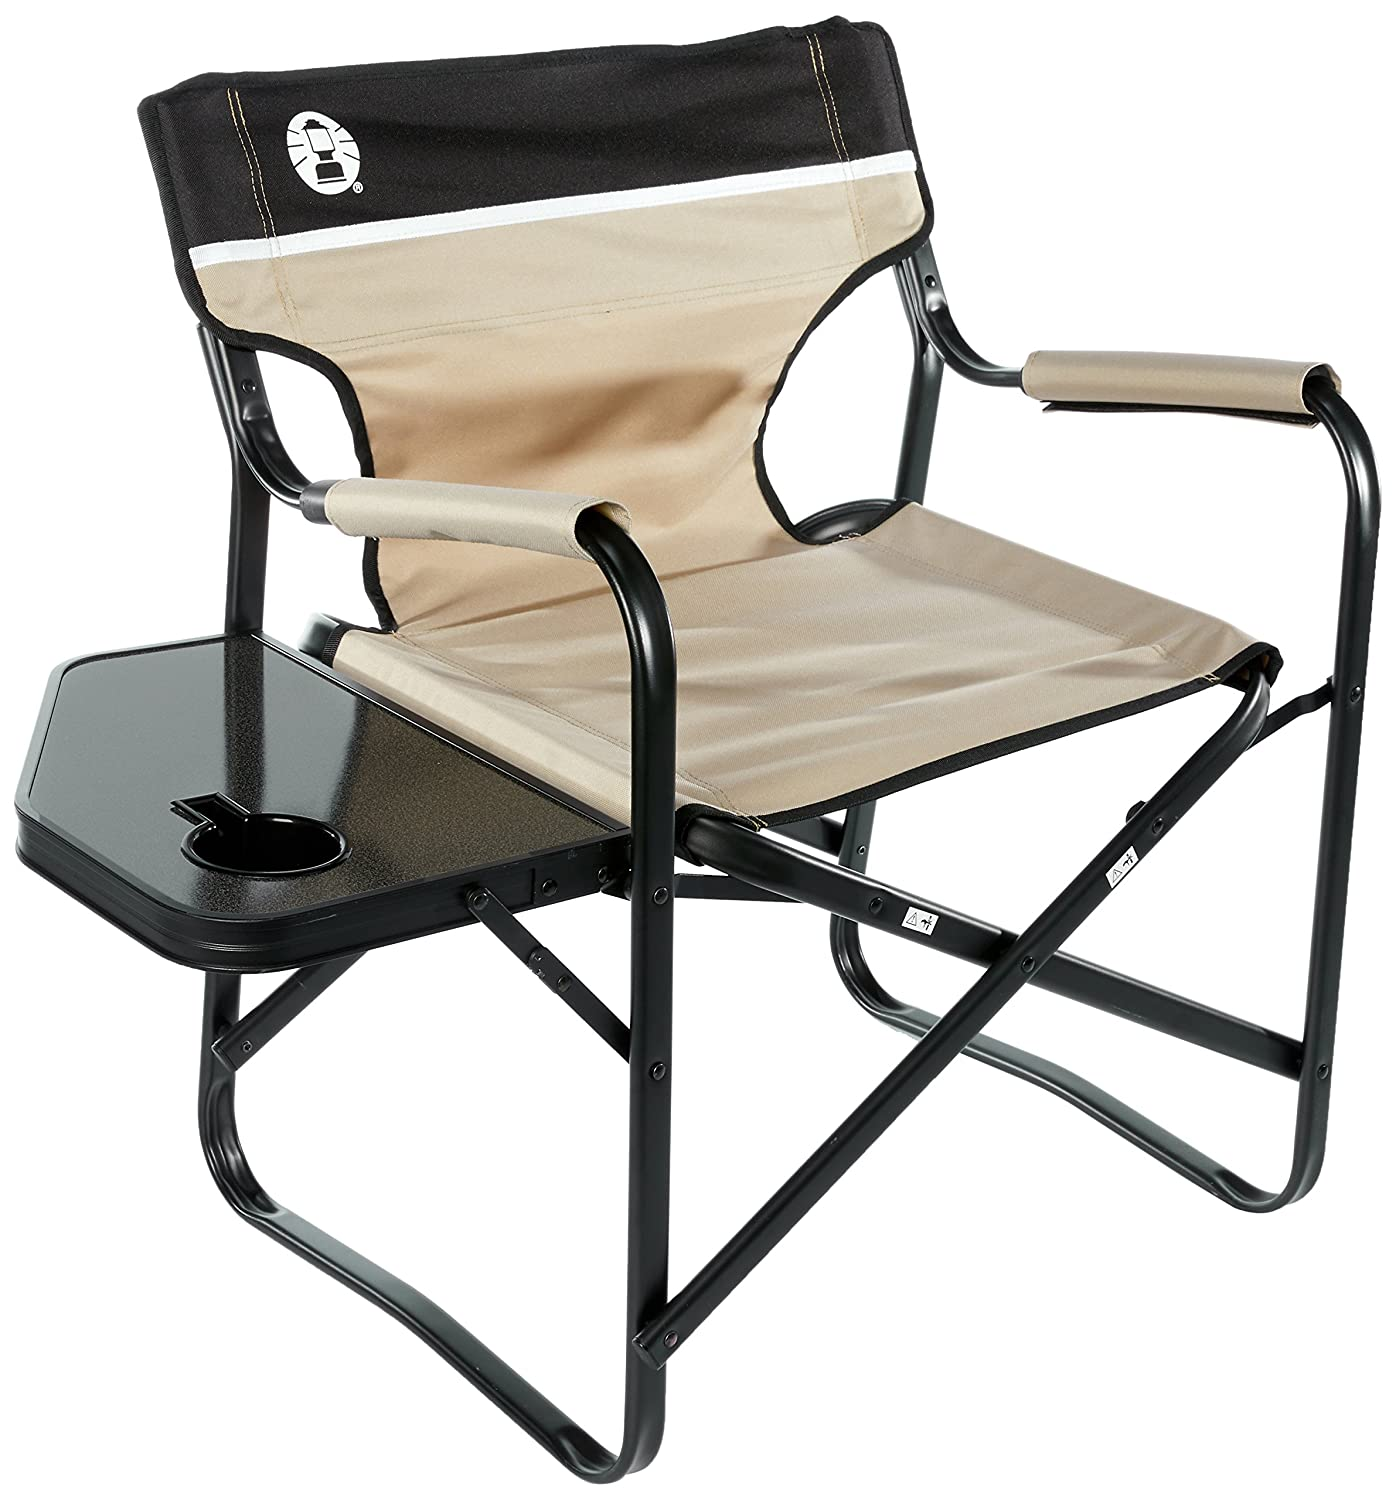 Deckchair Jetem Premium: customer reviews 65